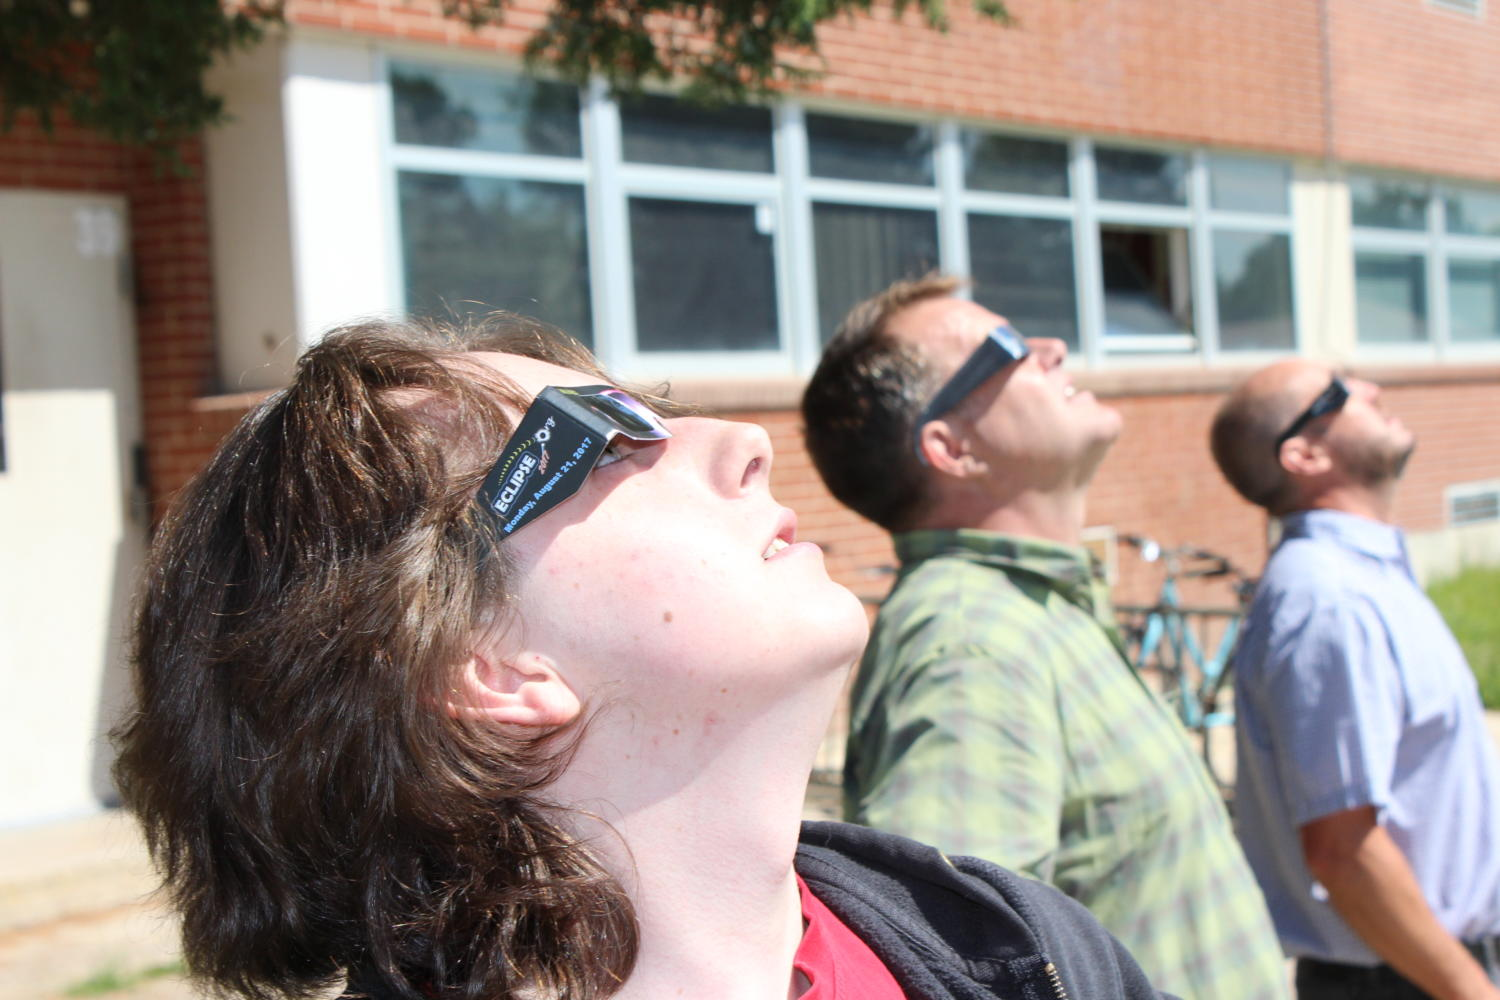 Student+Patrick+Brogan%2C+physics+teacher+Ron+Livingston%2C+and+math+teacher+Adam+Goudge+marvel+at+the+eclipse.